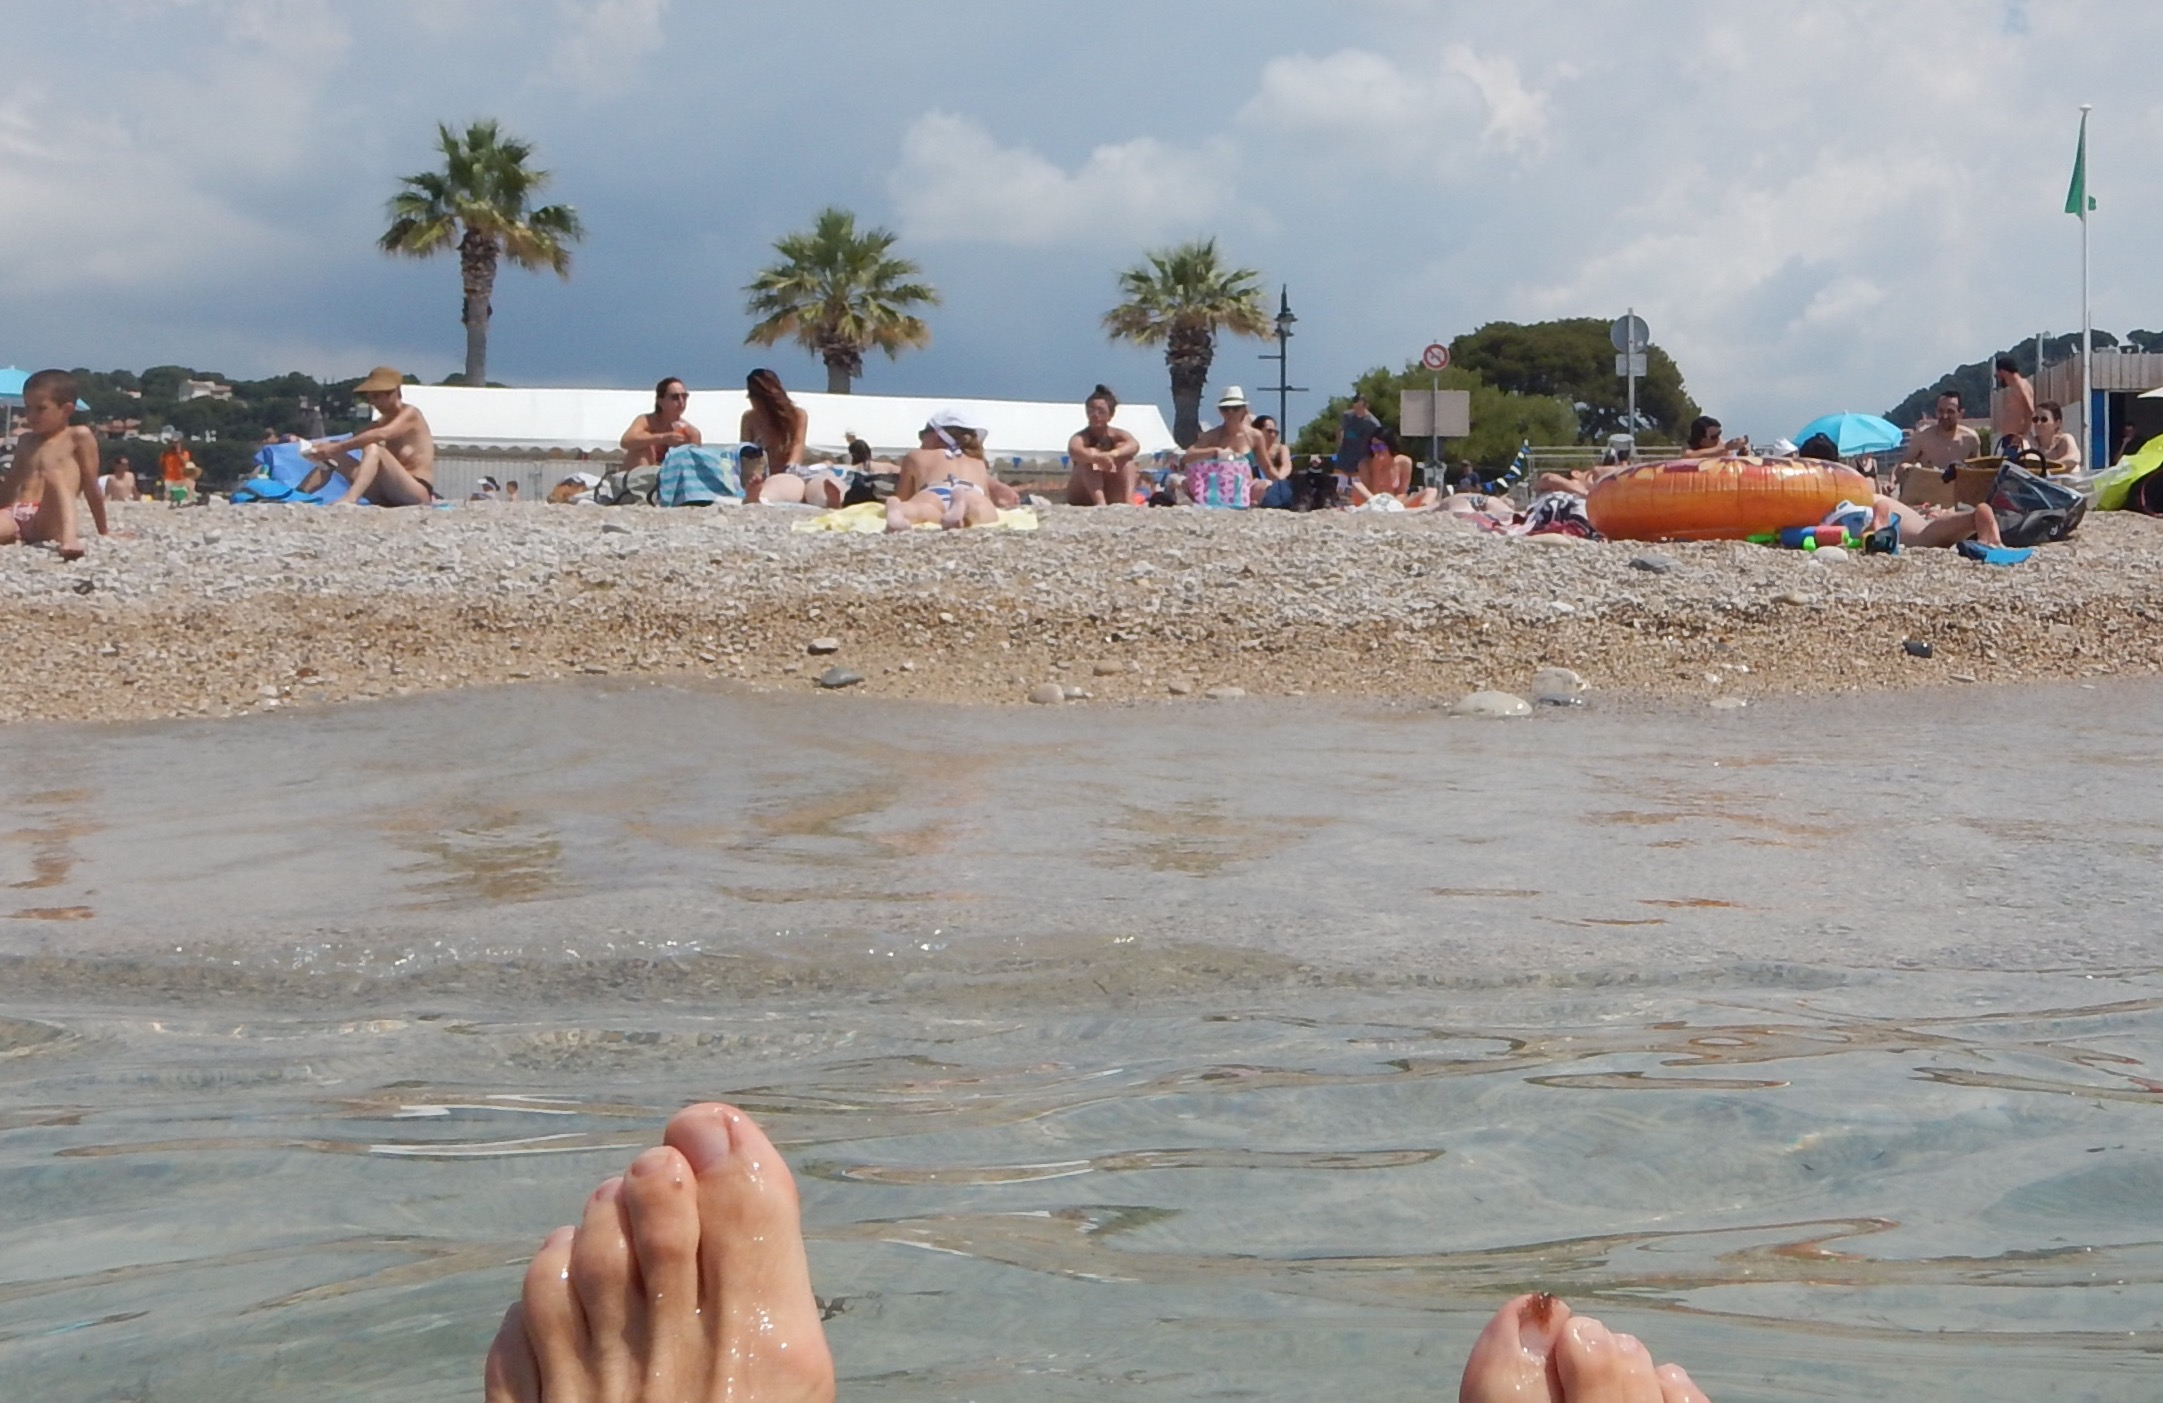 Yes, I did enjoy my swim, then back on the bike and off to St Tropez for more swimming.